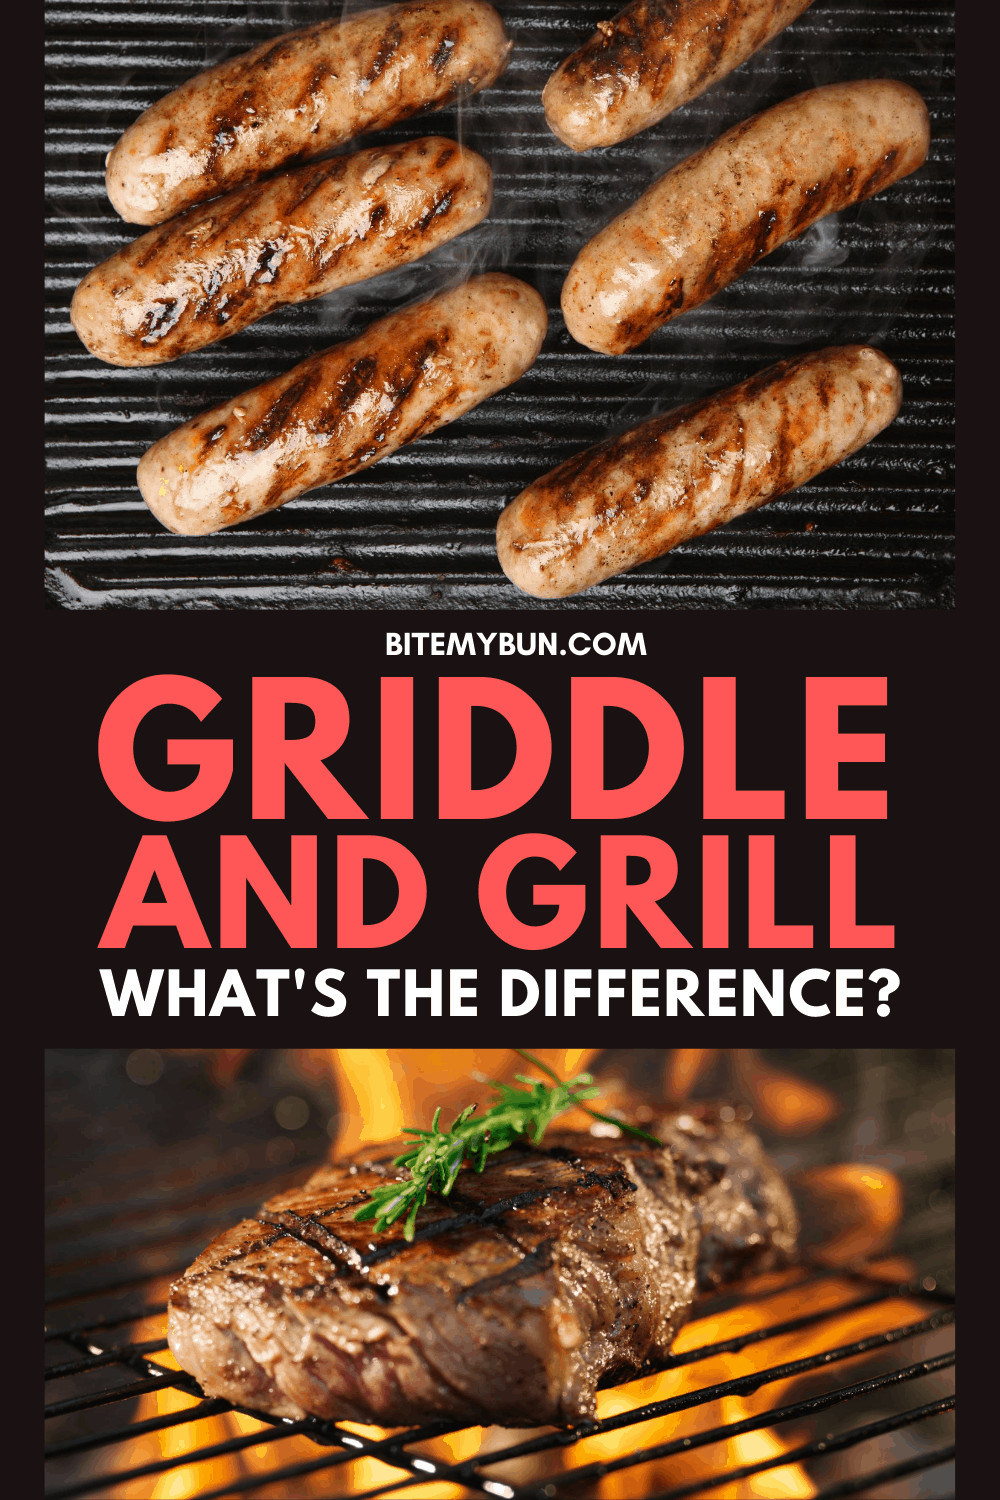 Griddle and grill whats the differene